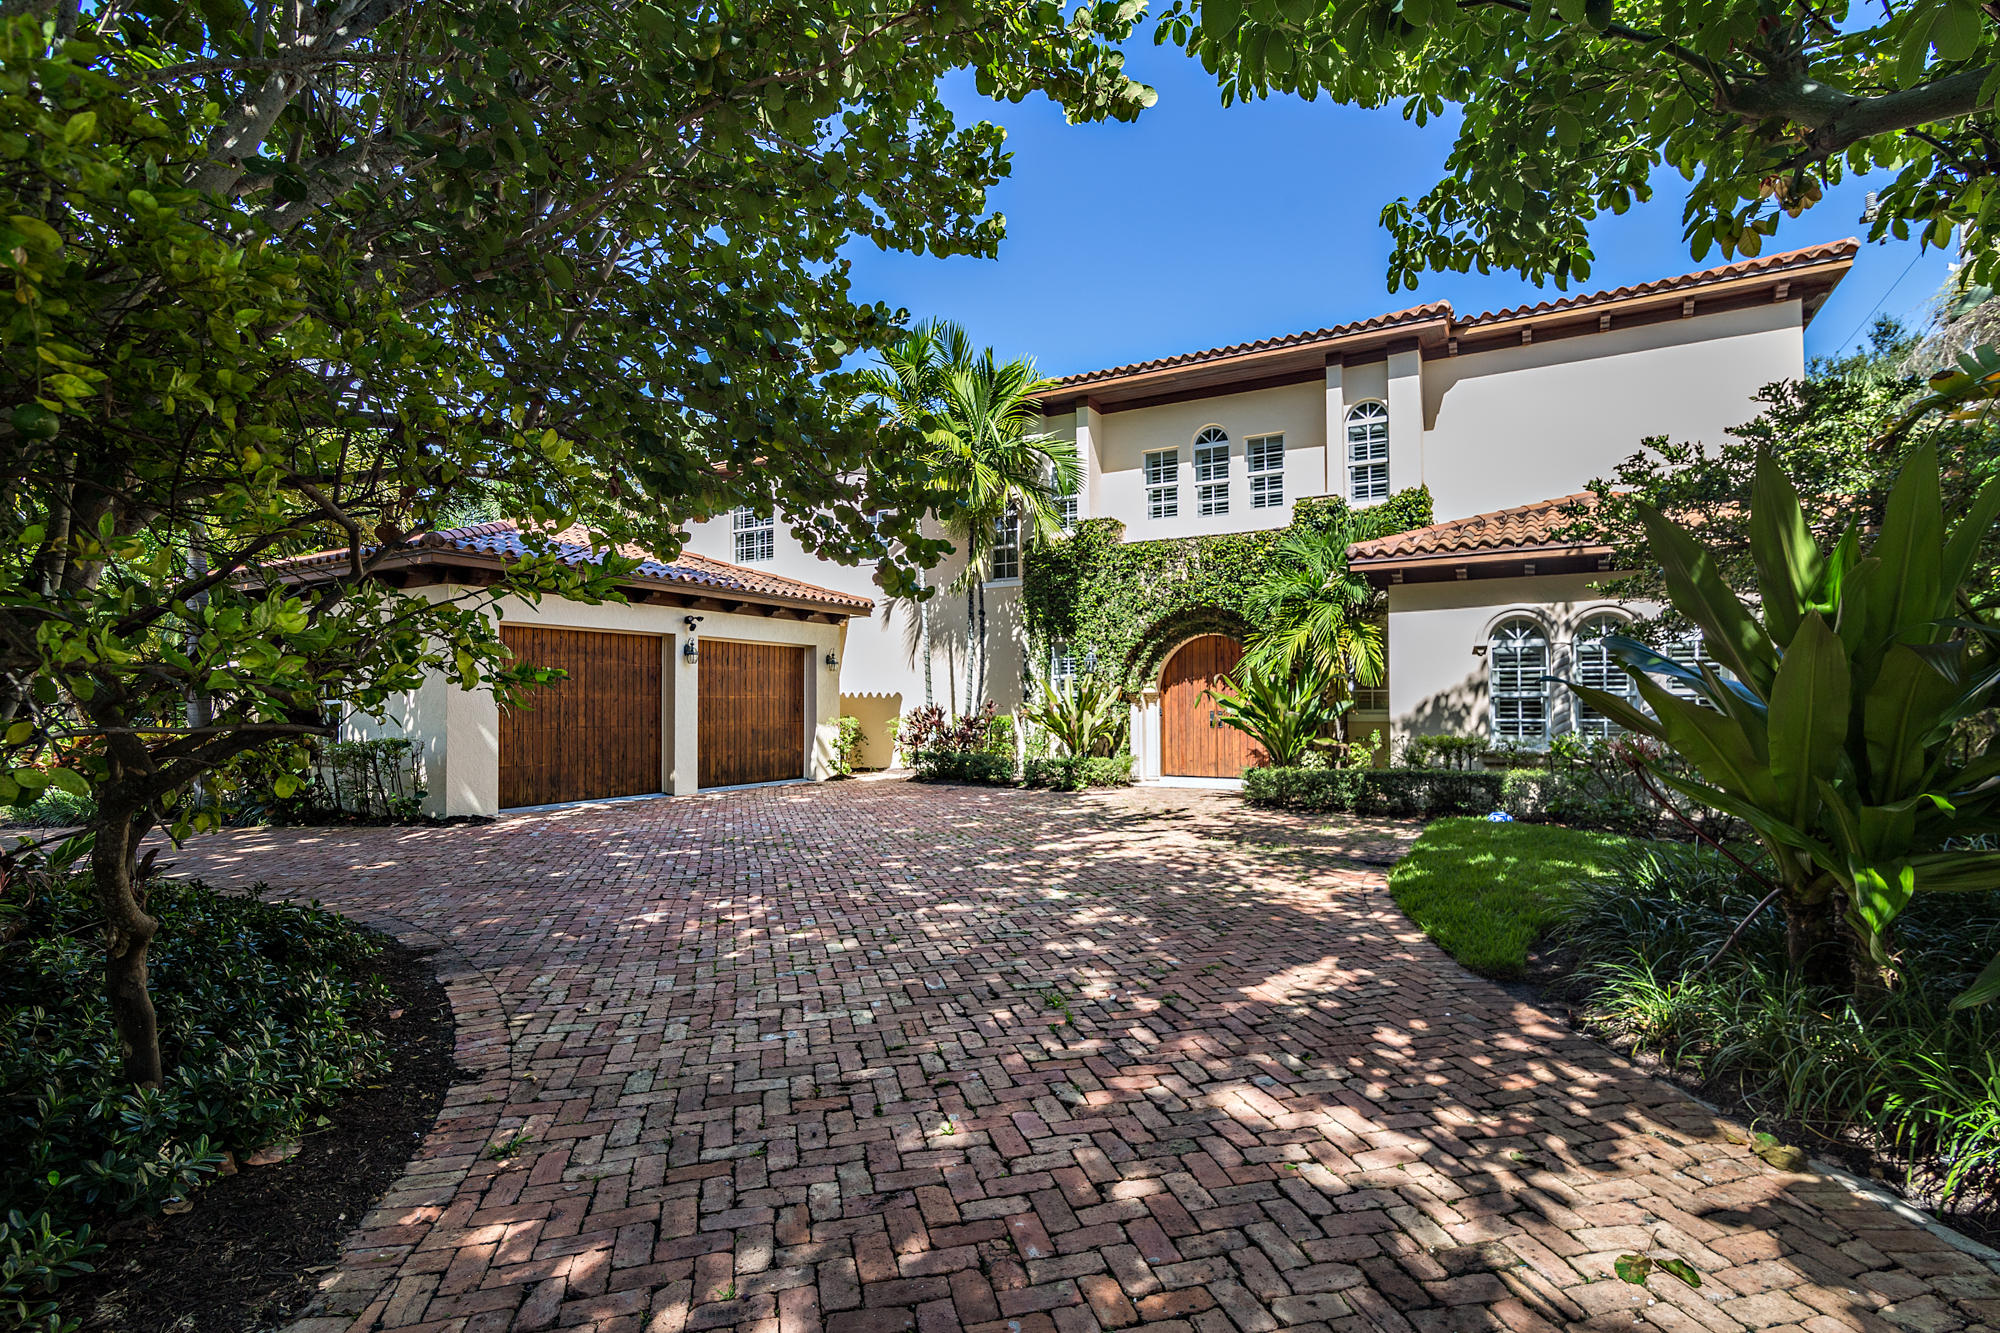 2418 S Olive Avenue  For Sale 10712098, FL